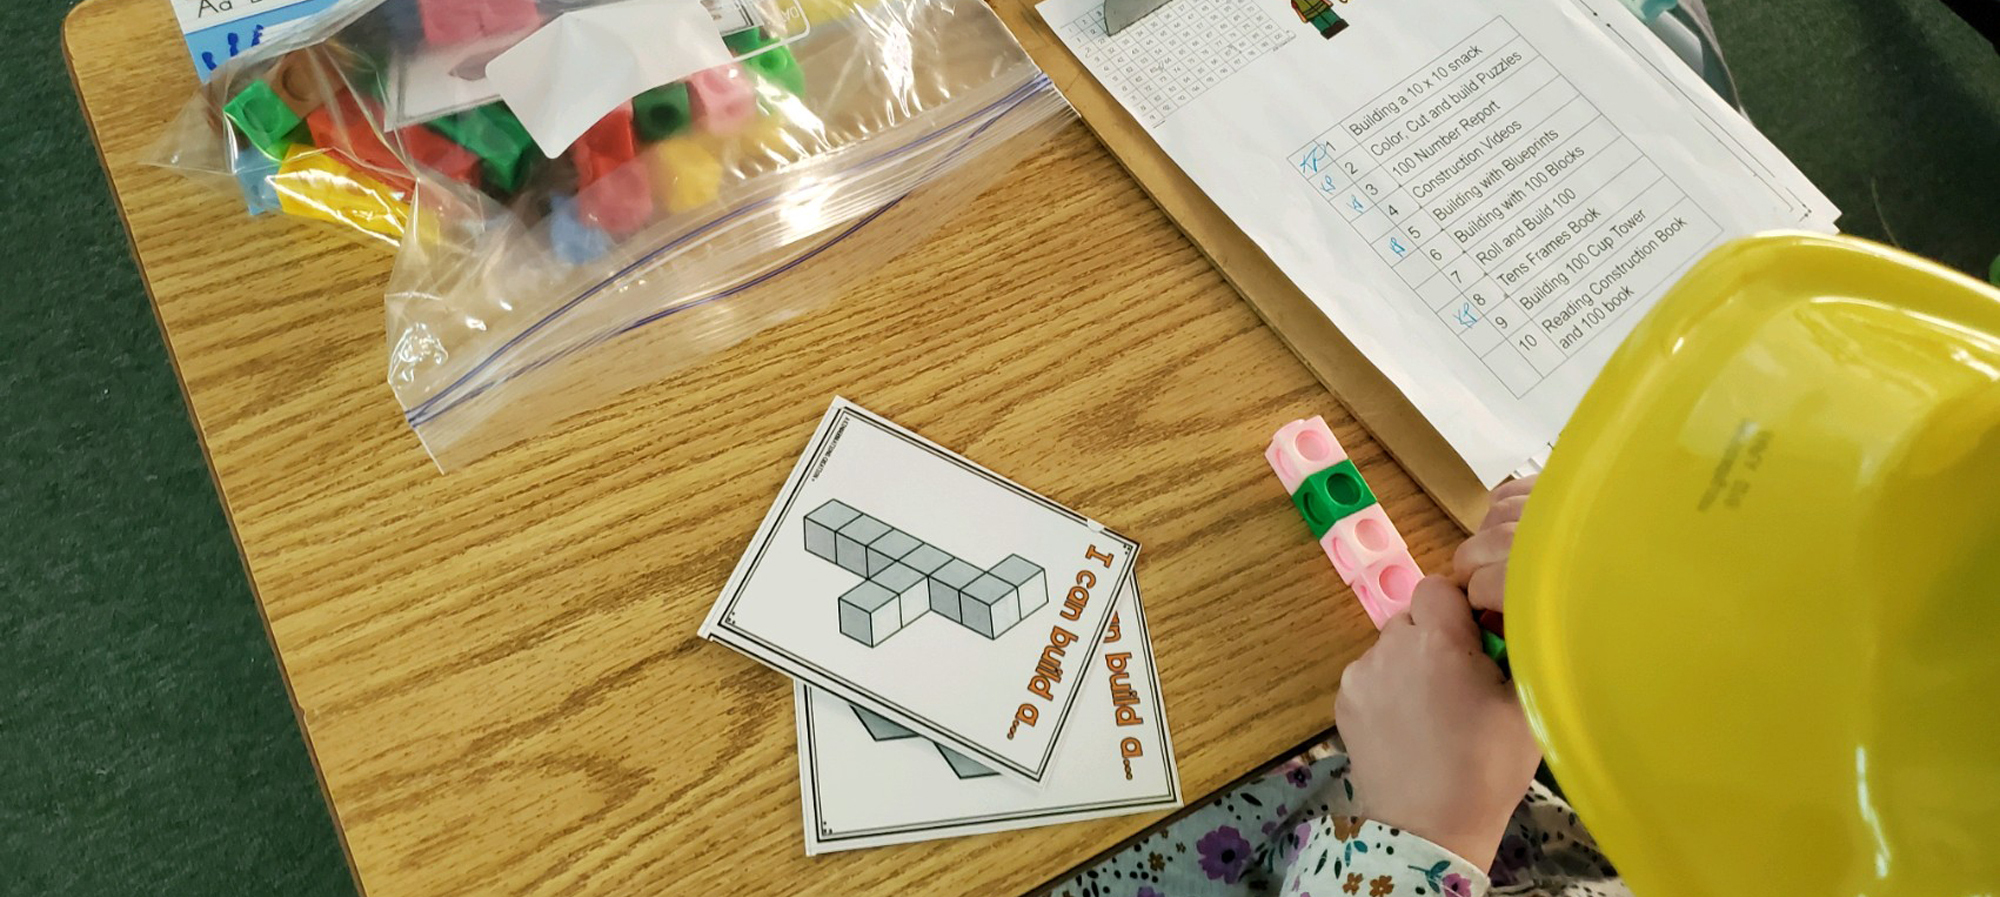 Girl working with 10 x 10 Construction blocks